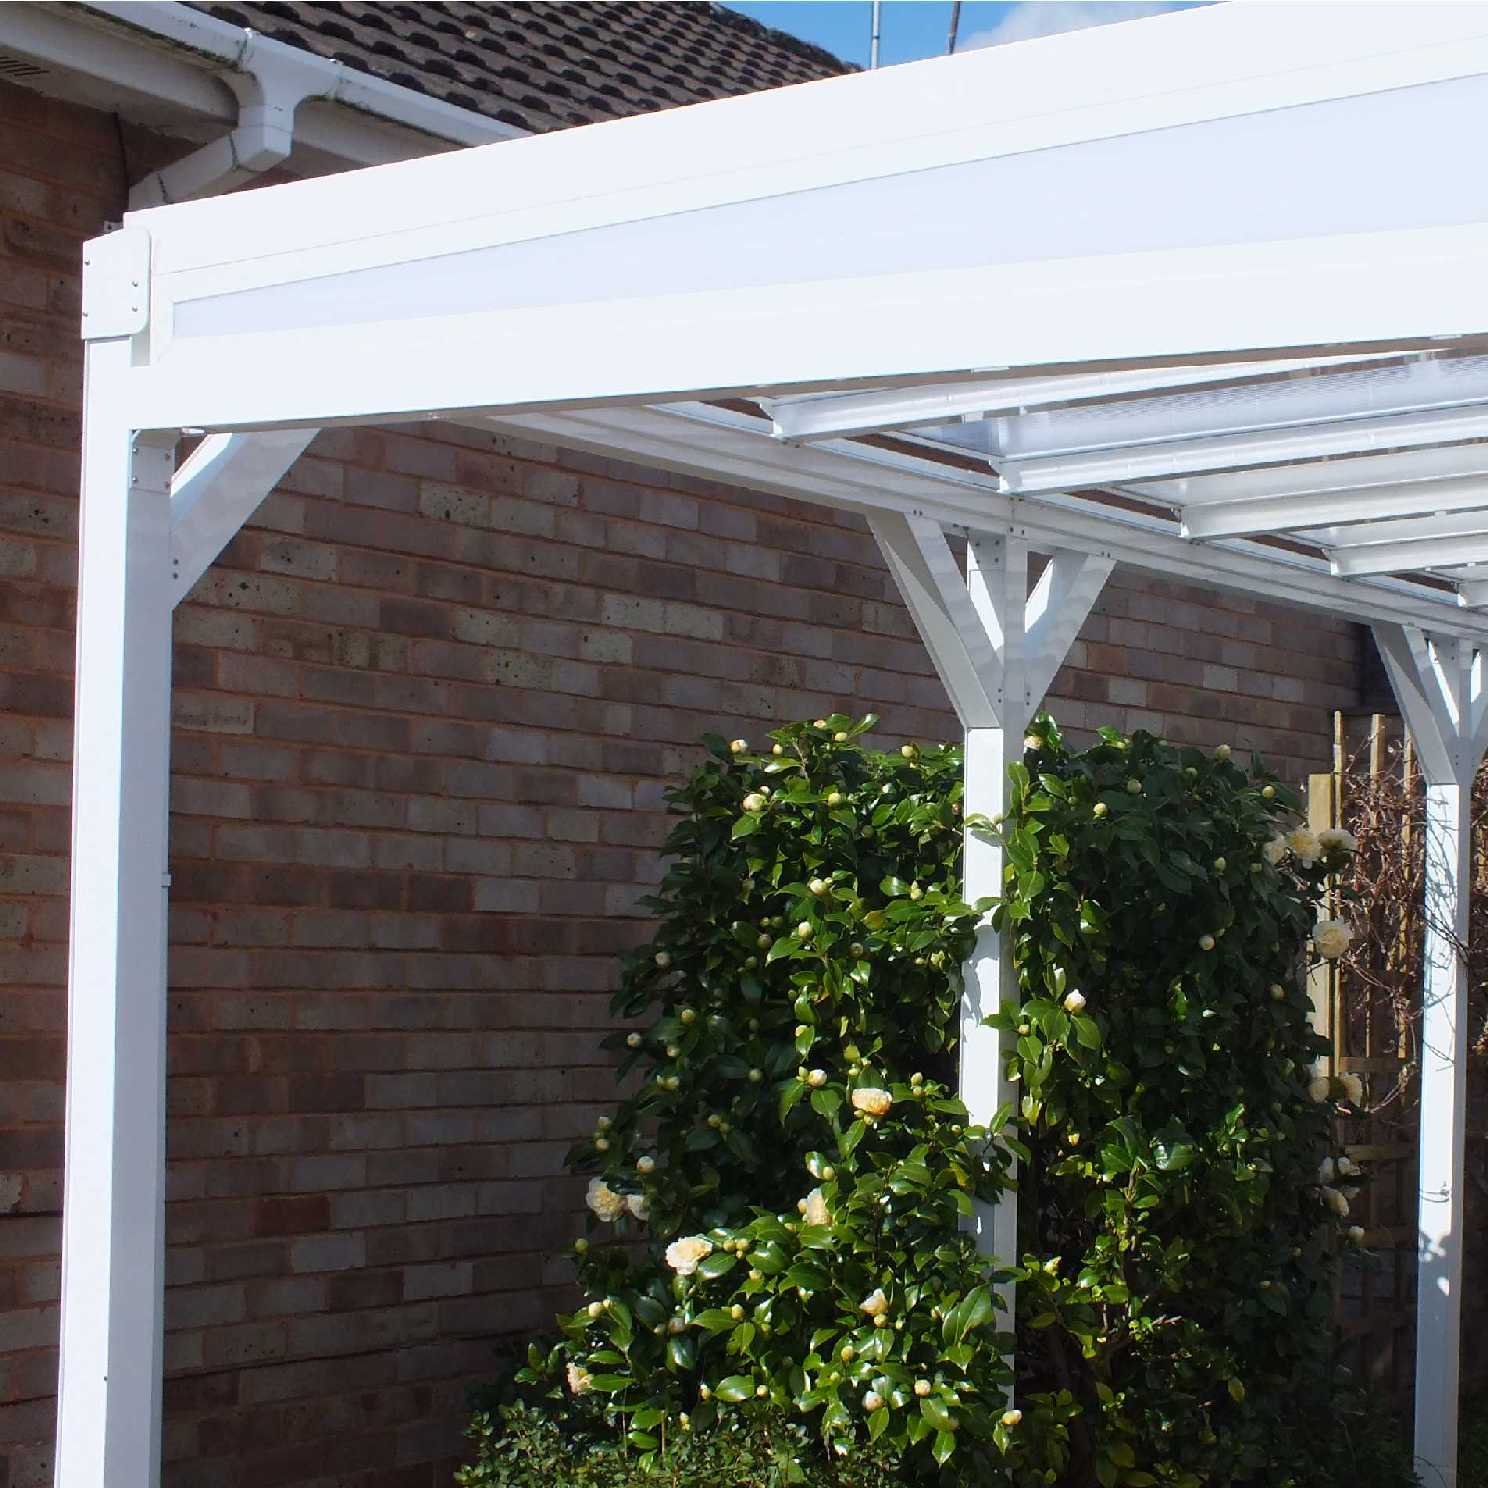 Omega Smart Lean-To Canopy with 16mm Polycarbonate Glazing - 2.8m (W) x 3.5m (P), (2) Supporting Posts from Omega Build